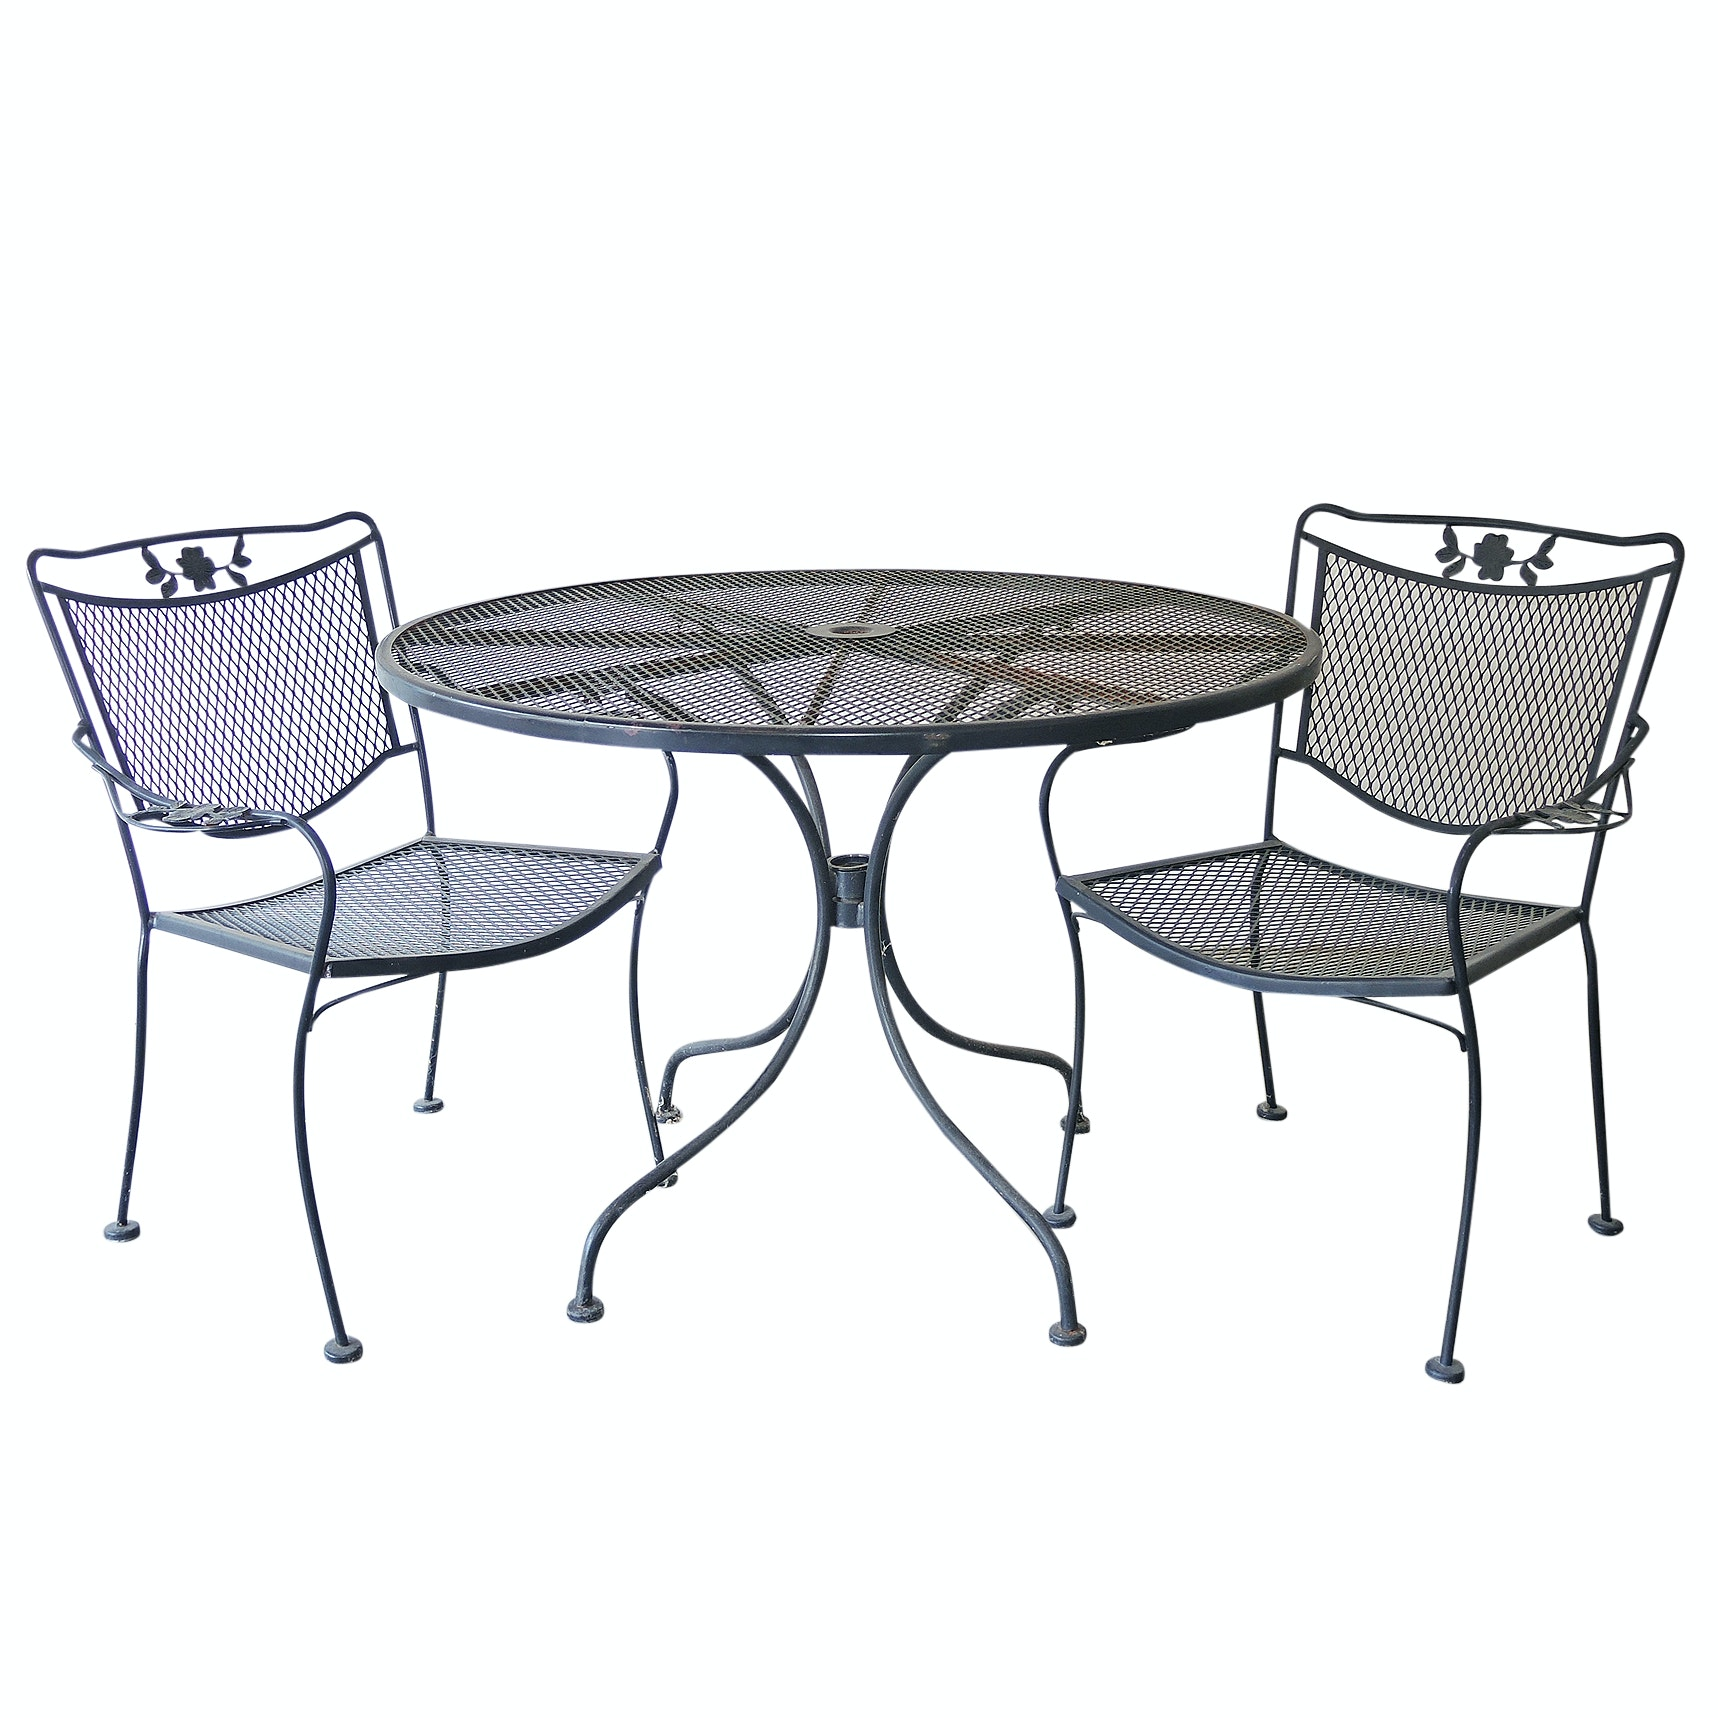 Round Wrought Iron Patio Table and Two Chairs